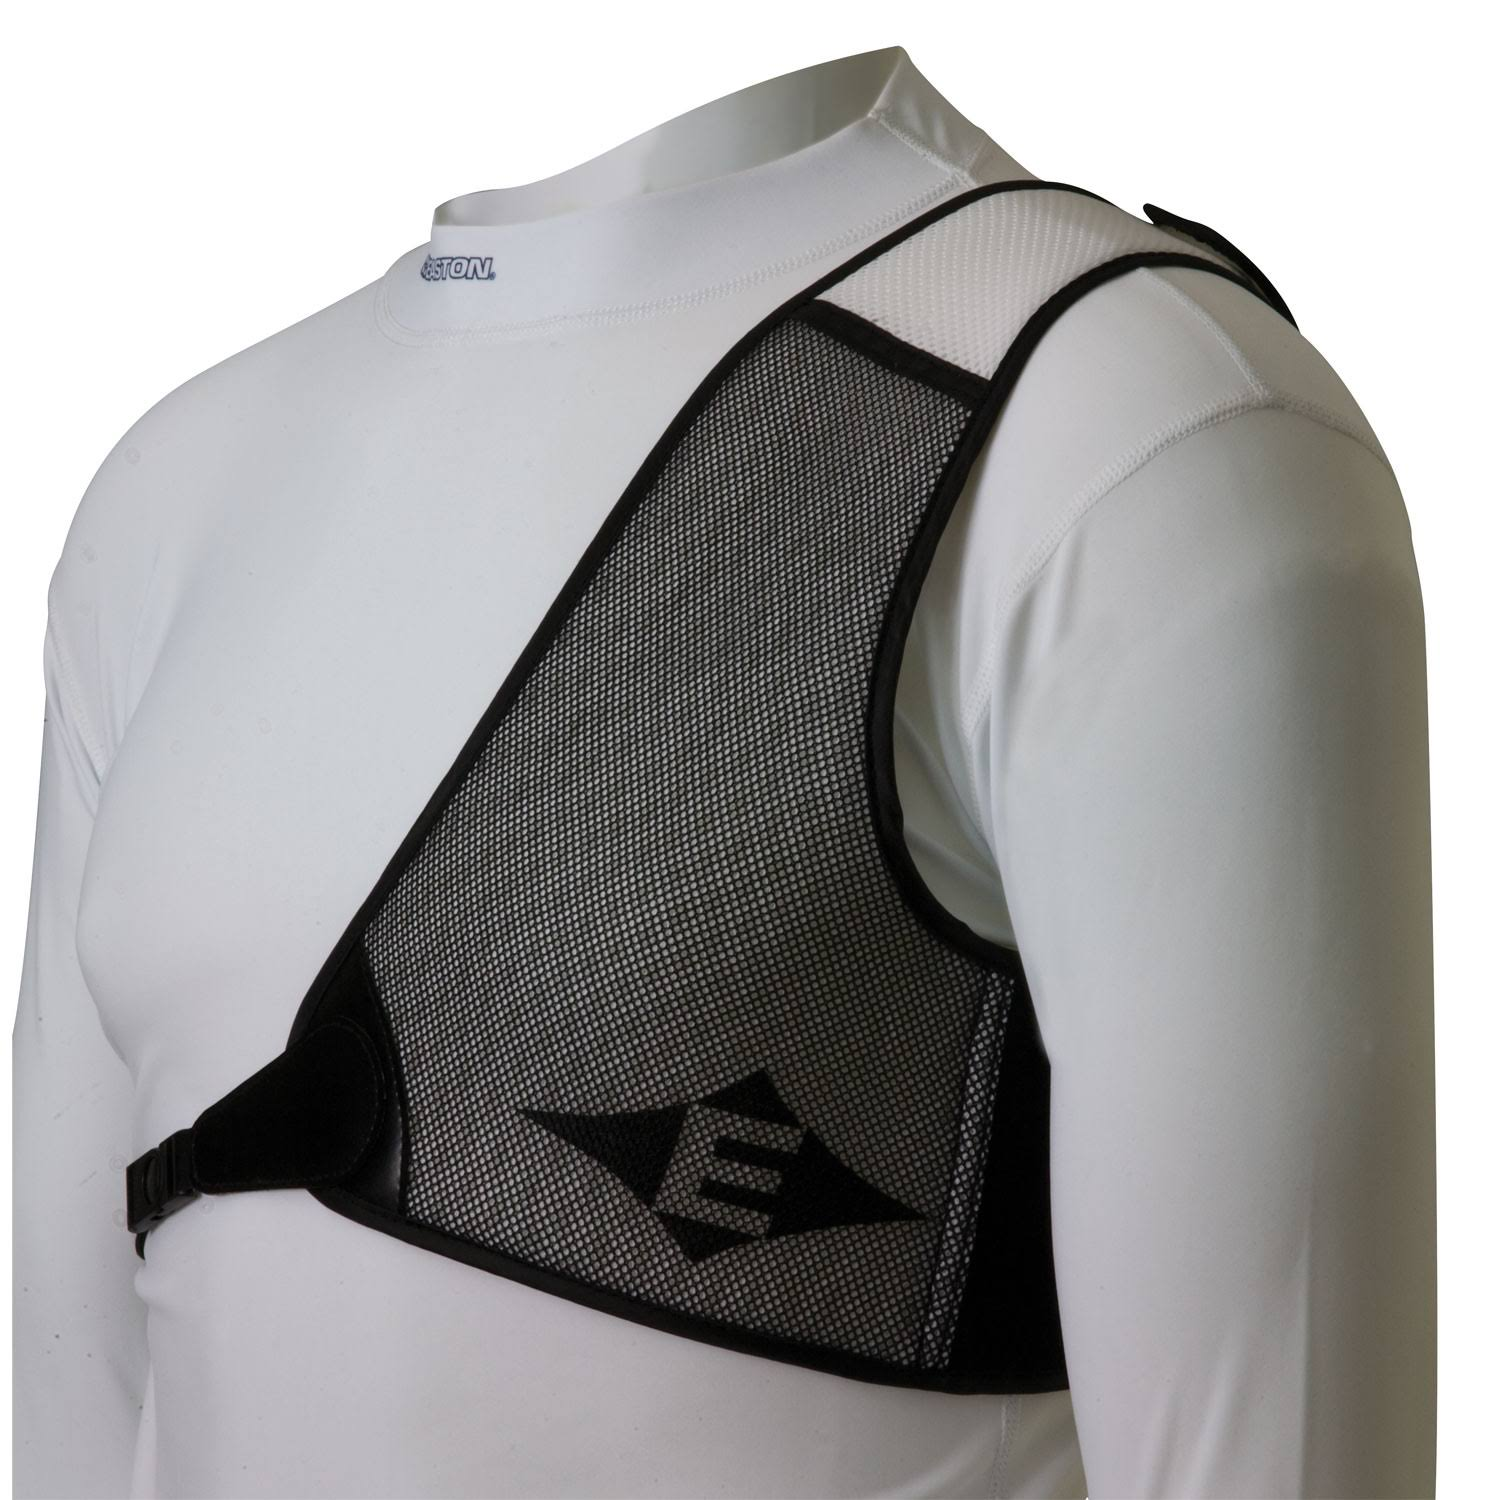 Easton Diamond Chest Guard RH White/Black Large - 216774SL